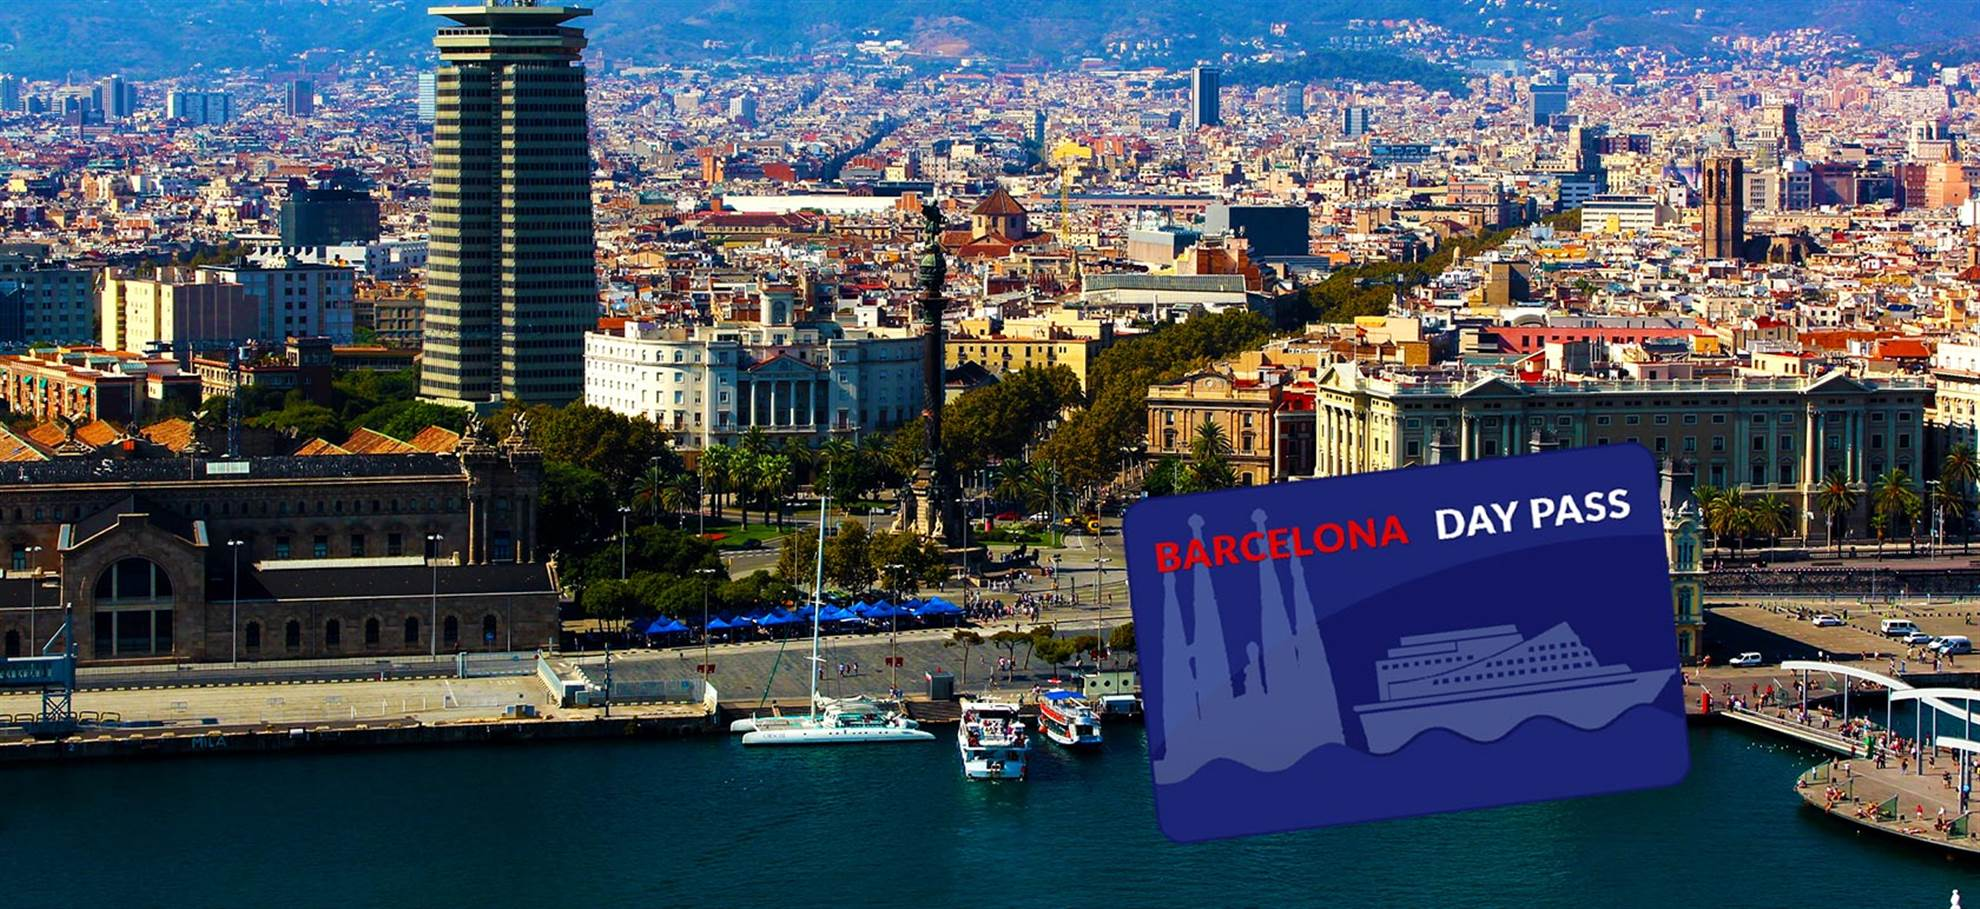 Barcelona Day Pass from Port of BCN